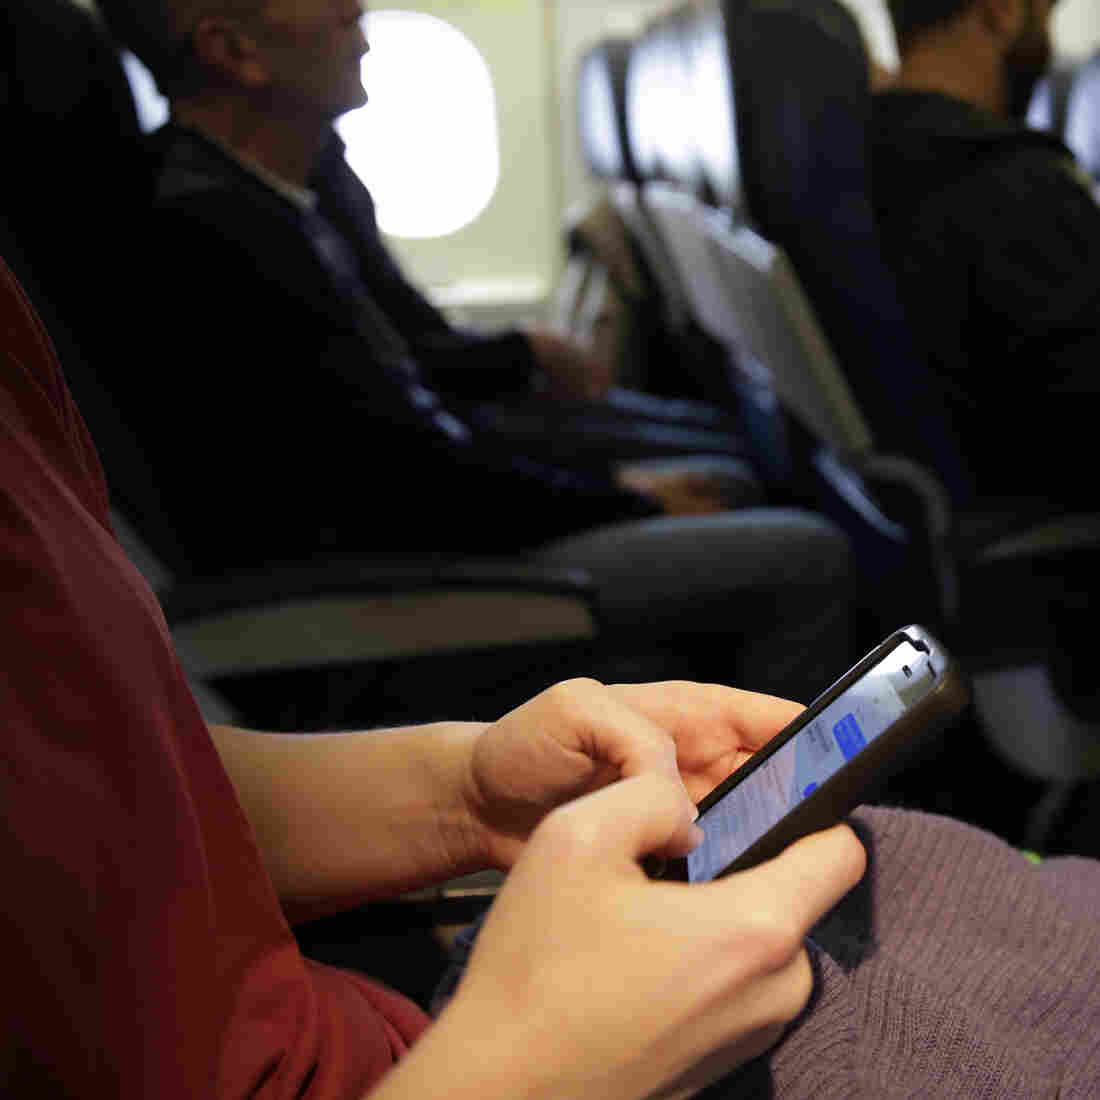 The new head of the Federal Communications Commission proposes allowing airline passengers to make phone calls during flights. Here, a passenger looks at her cellphone before a flight last month.